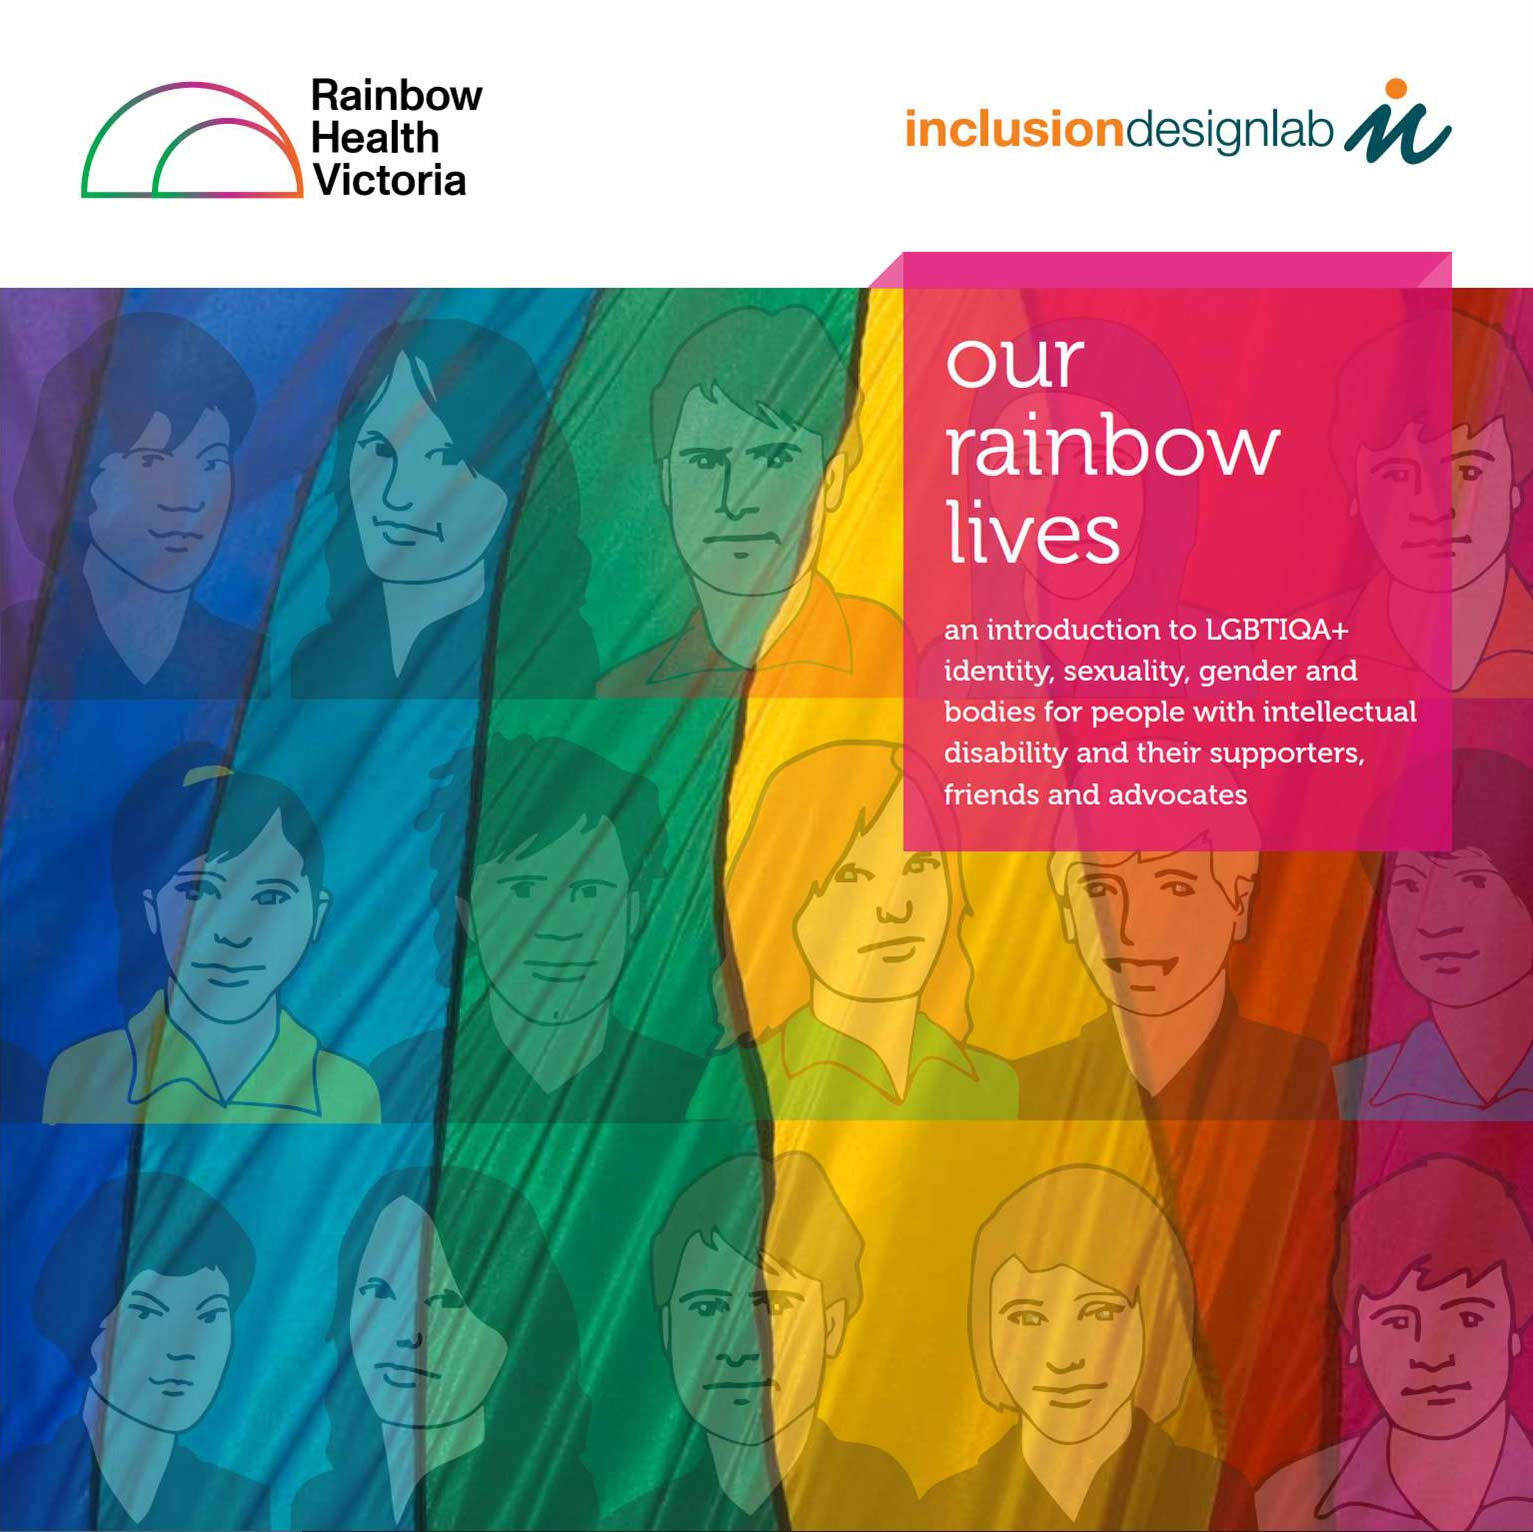 our rainbow lives - an introduction to LGBTIQA+ identity, sexuality, gender and bodies for people with intellectual disability and thier supporters and advocates